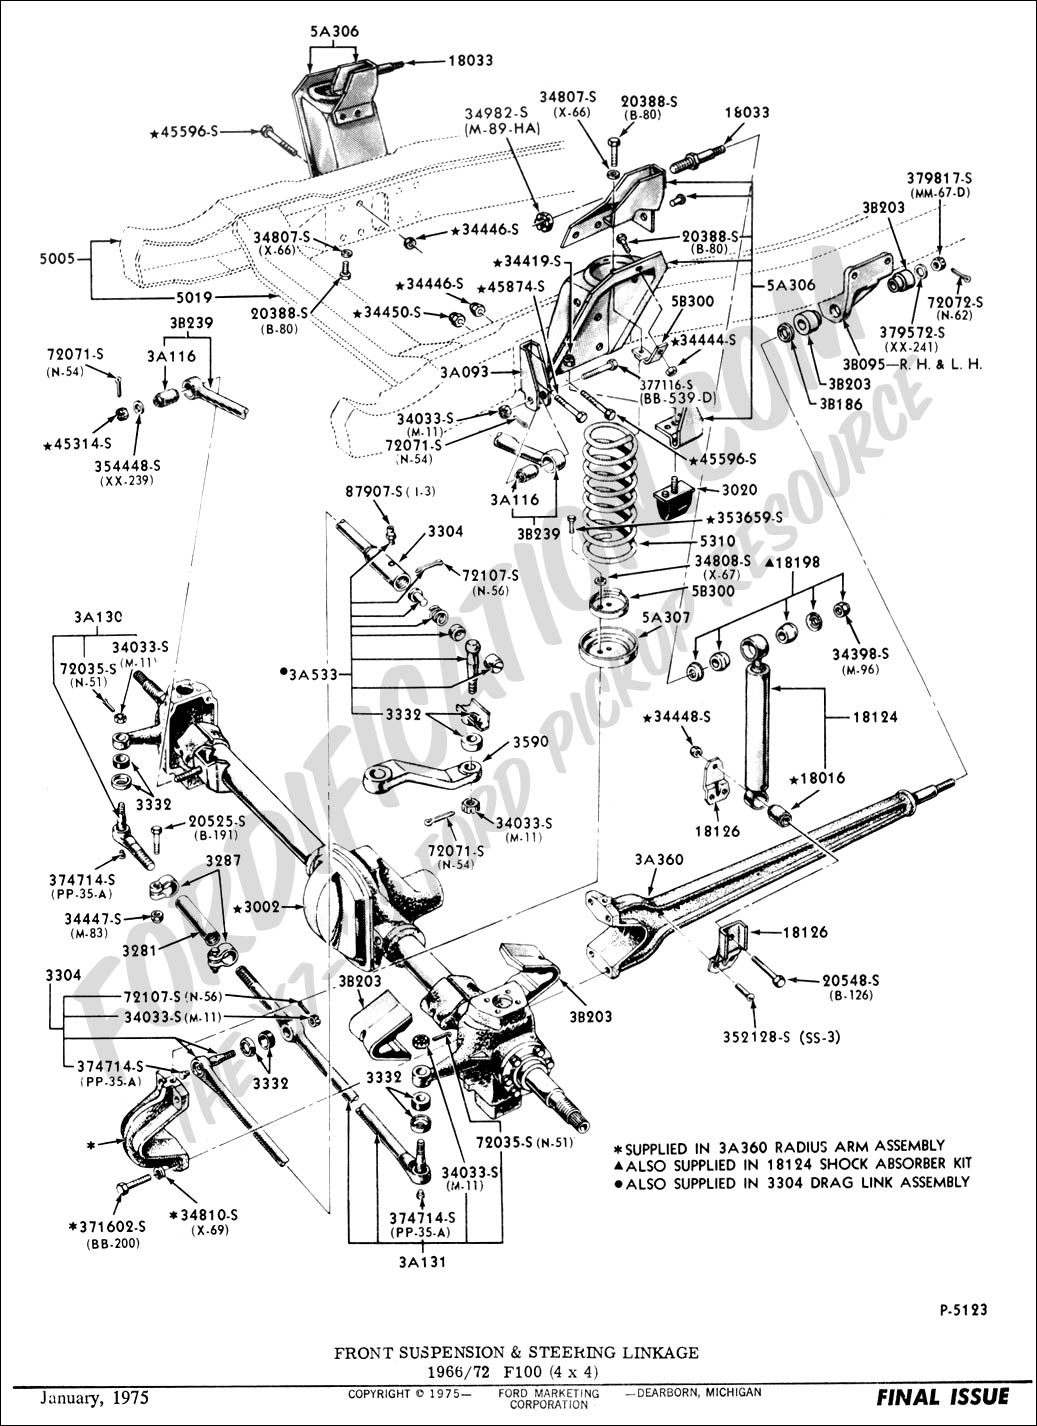 1995 F150 Transmission Diagram http://www.fordification.com/tech/schematics_a.htm